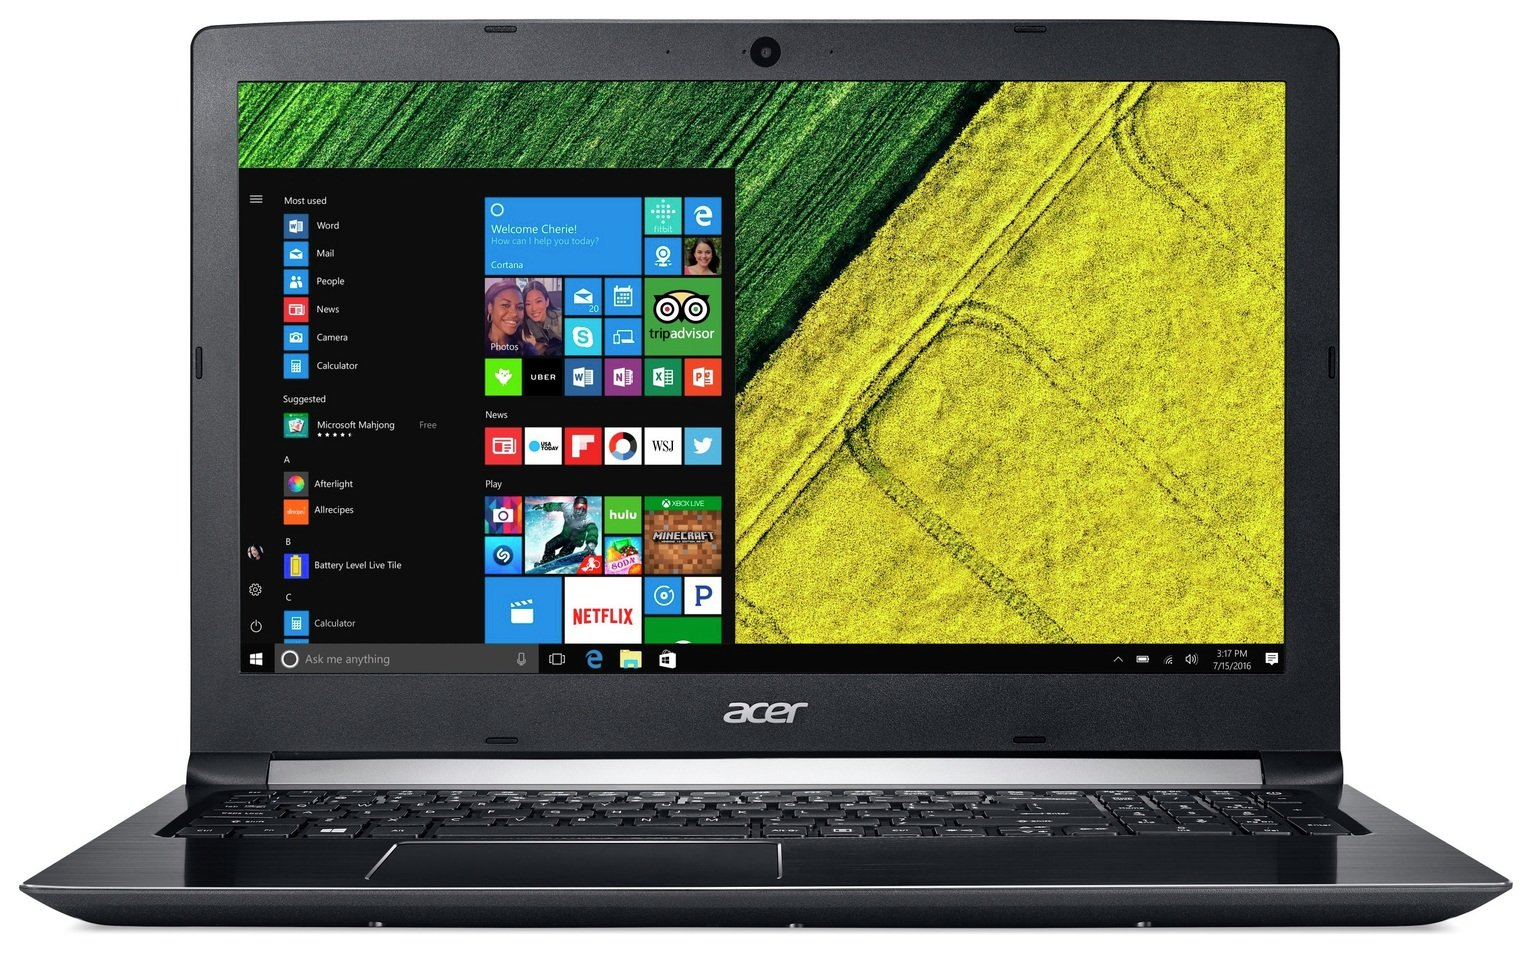 Image of Acer Aspire 5 15.6 Inch i5 8GB 256GB Laptop - Black